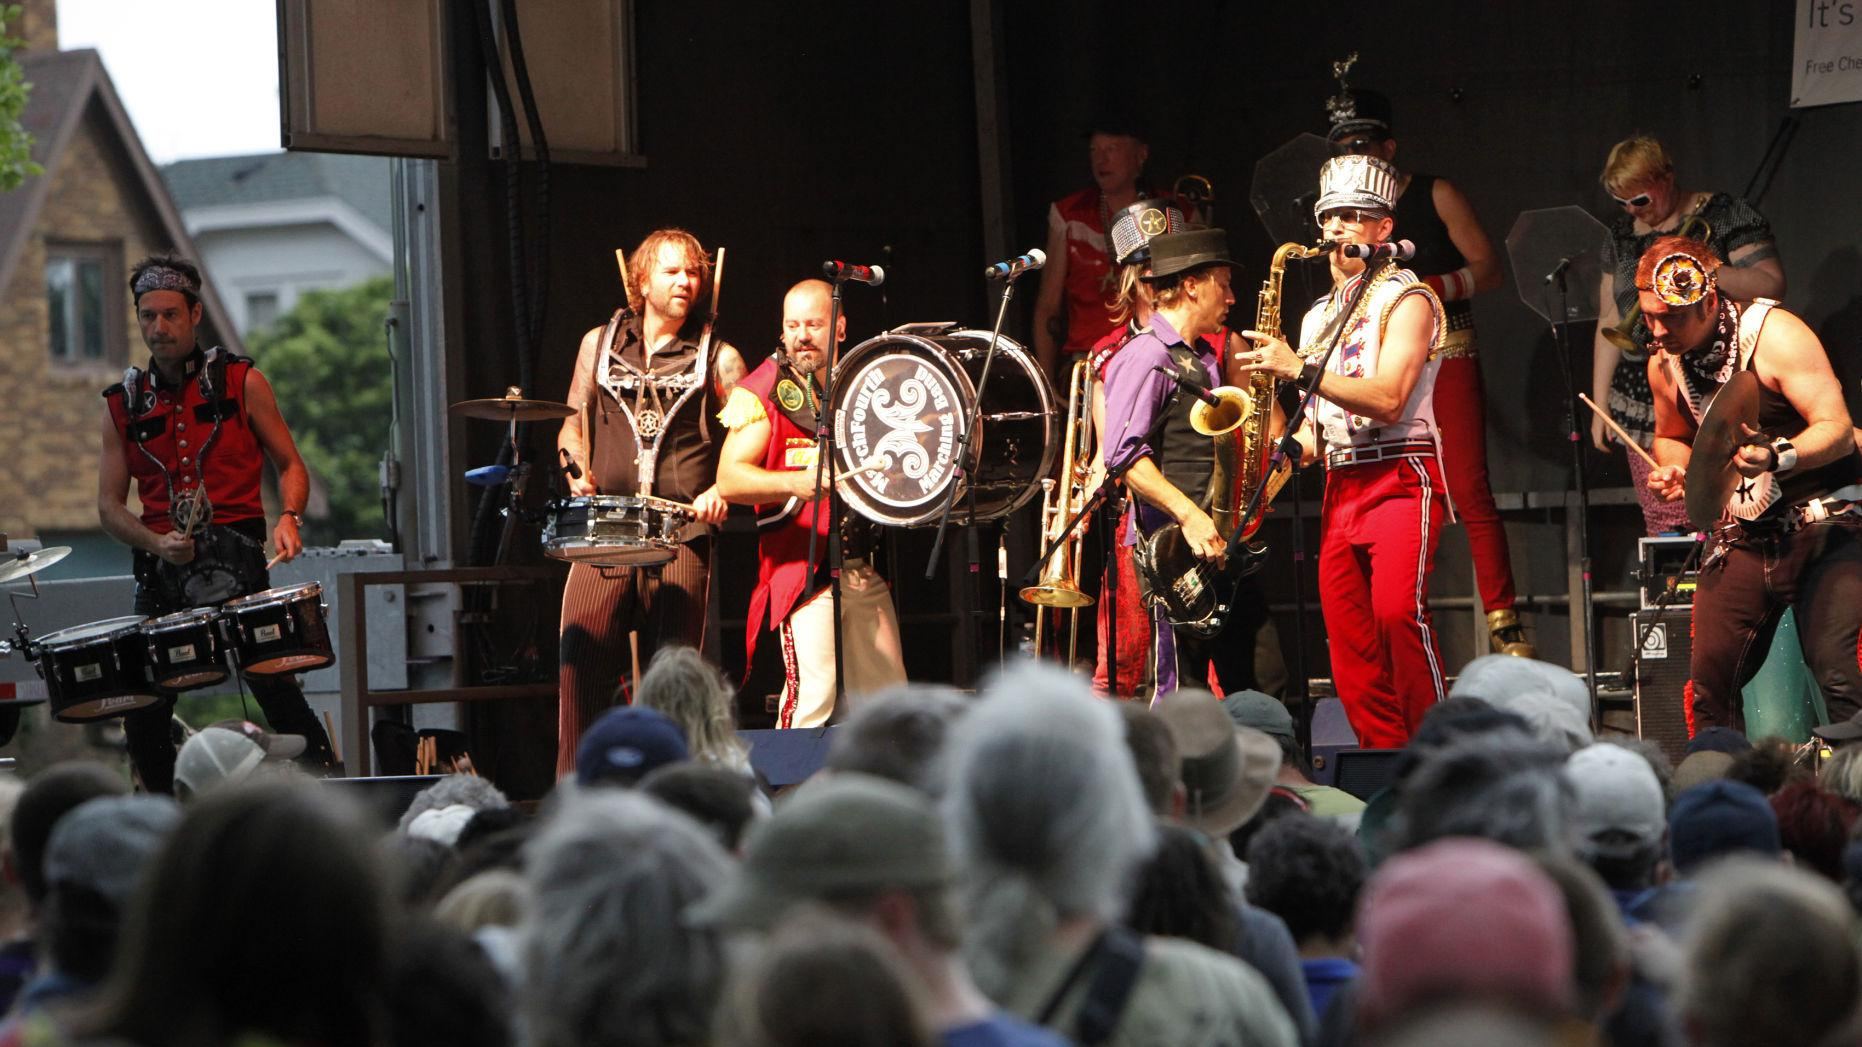 17 Hippies On Willy Street >> Bob Queen Plans To Stage New Willy Street Event One Week Before